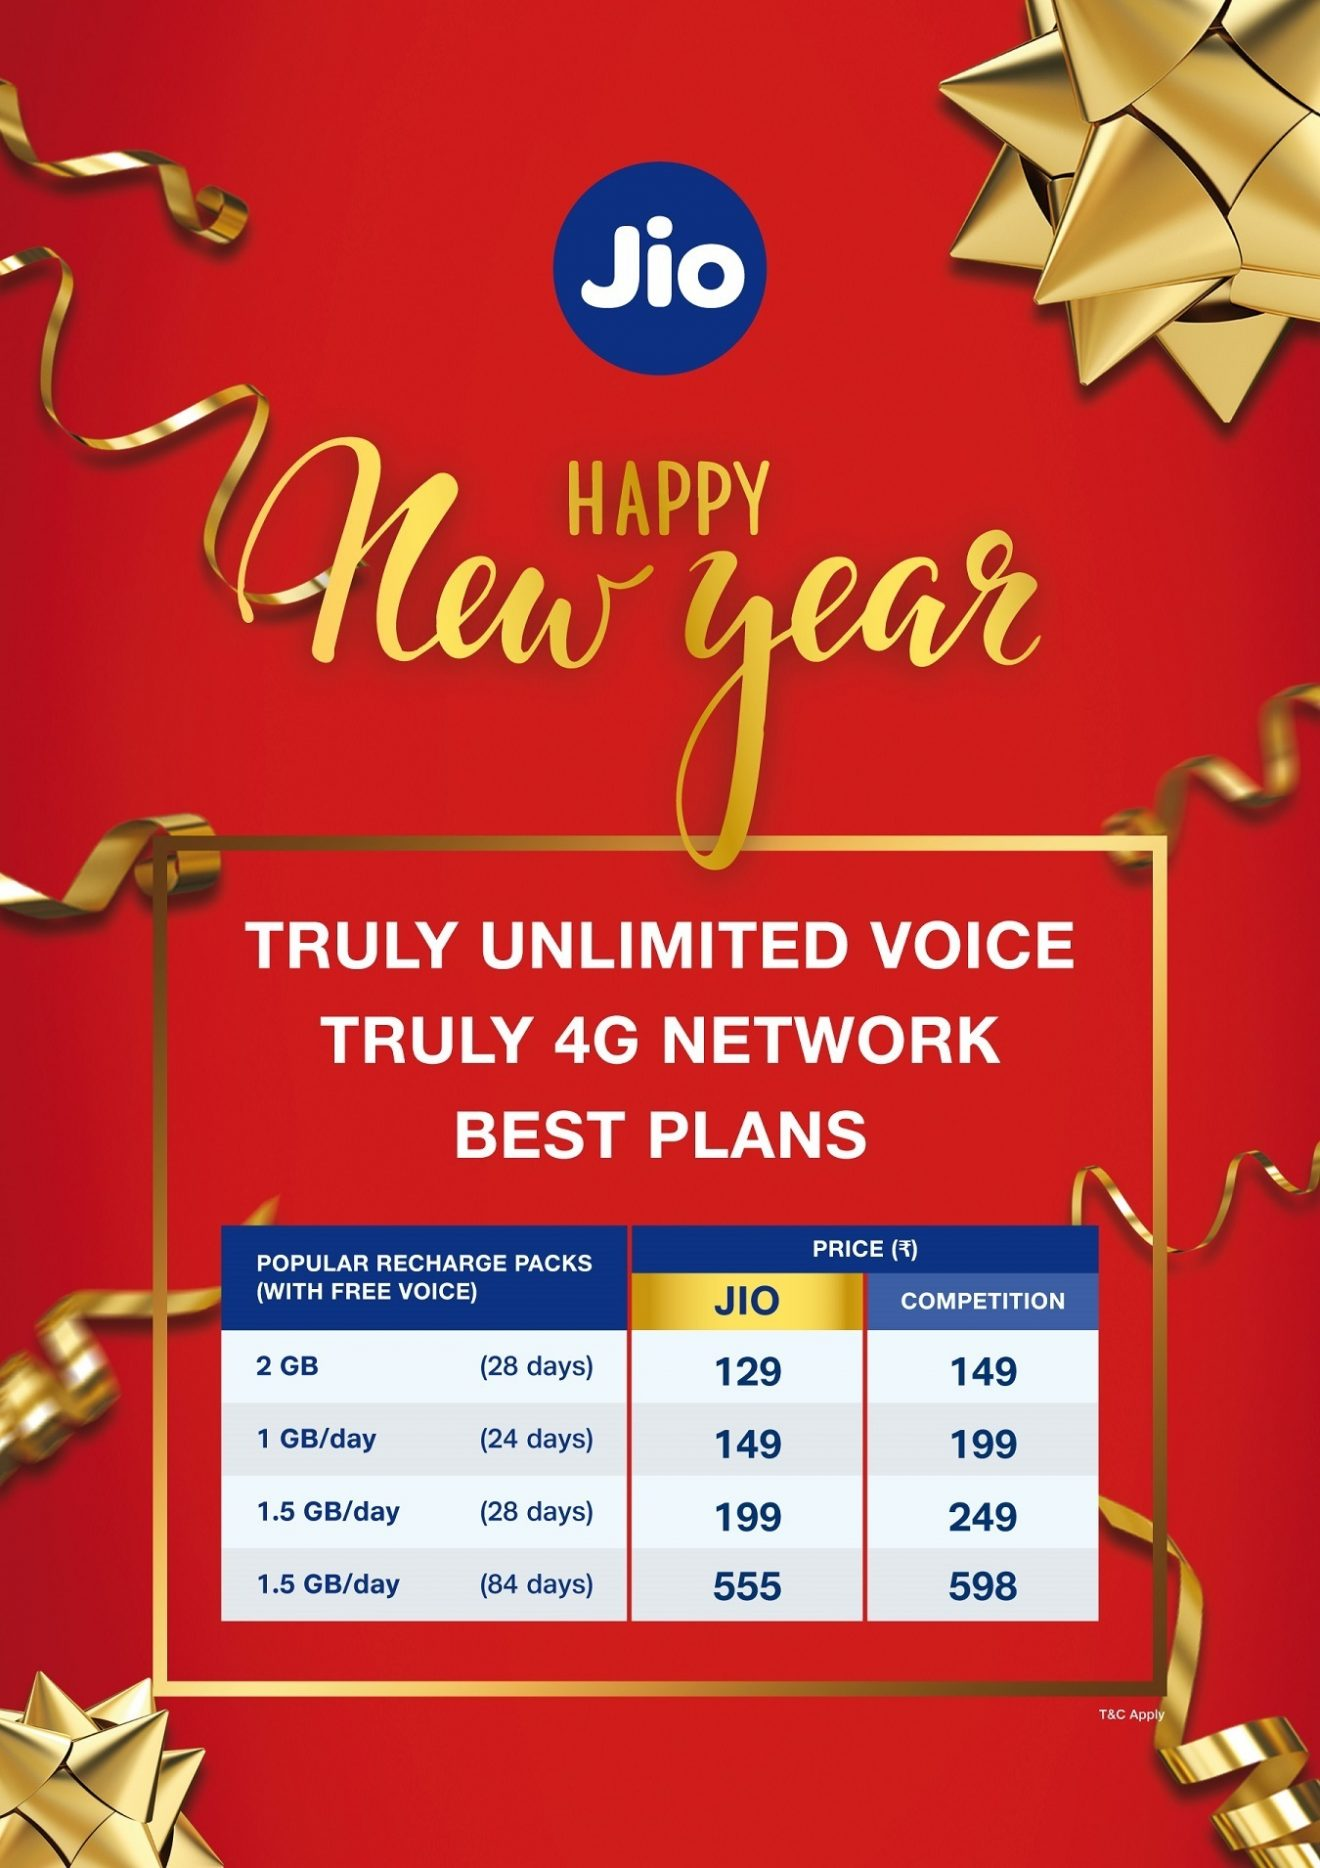 Jio Honours Its Commitment Makes All Domestic Voice Calls Absolutely Free From 1 Jan 2021